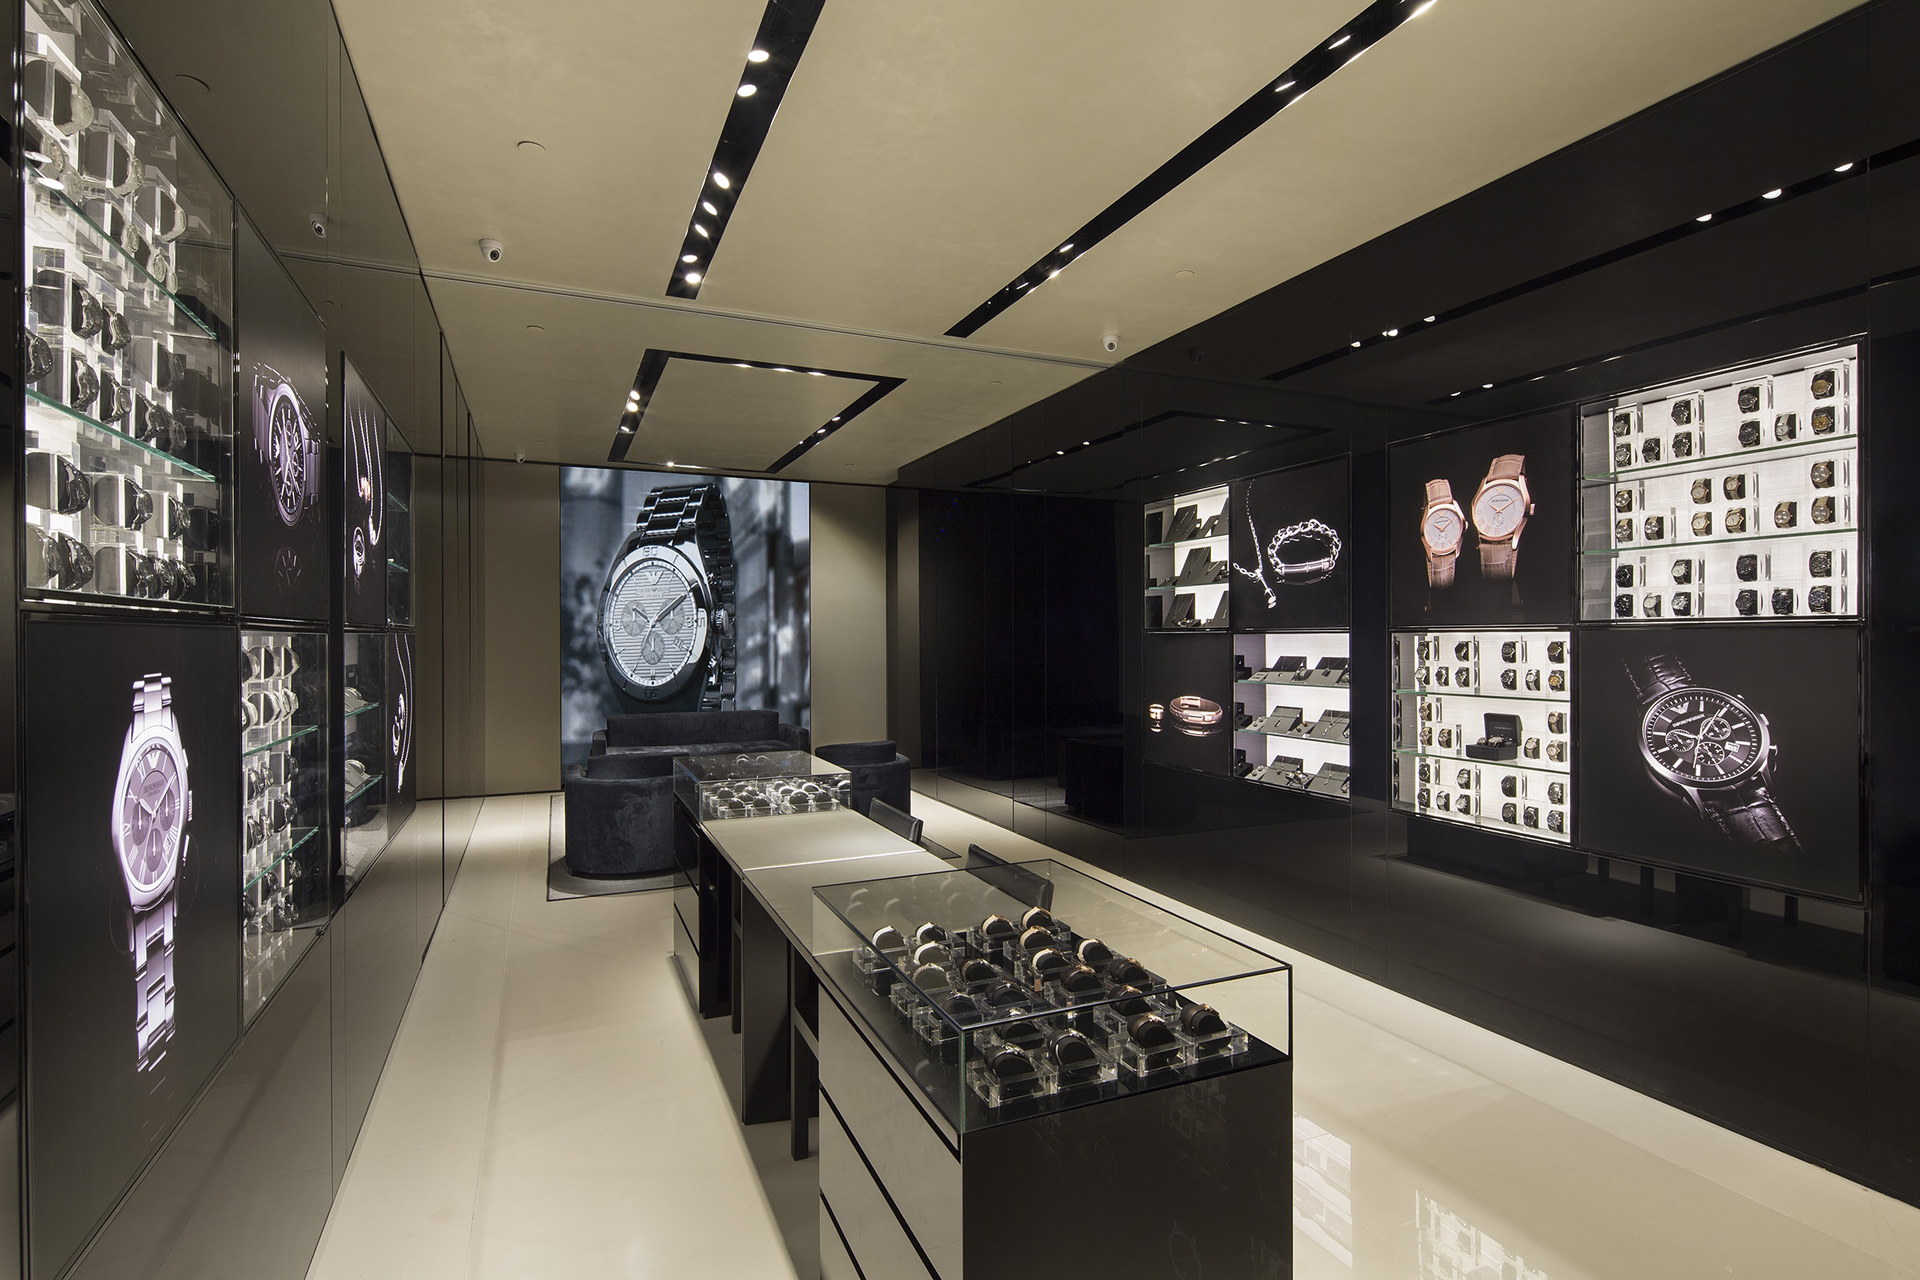 Black color accent and modern interior decoration created for the renovation of a small jewellery shop.